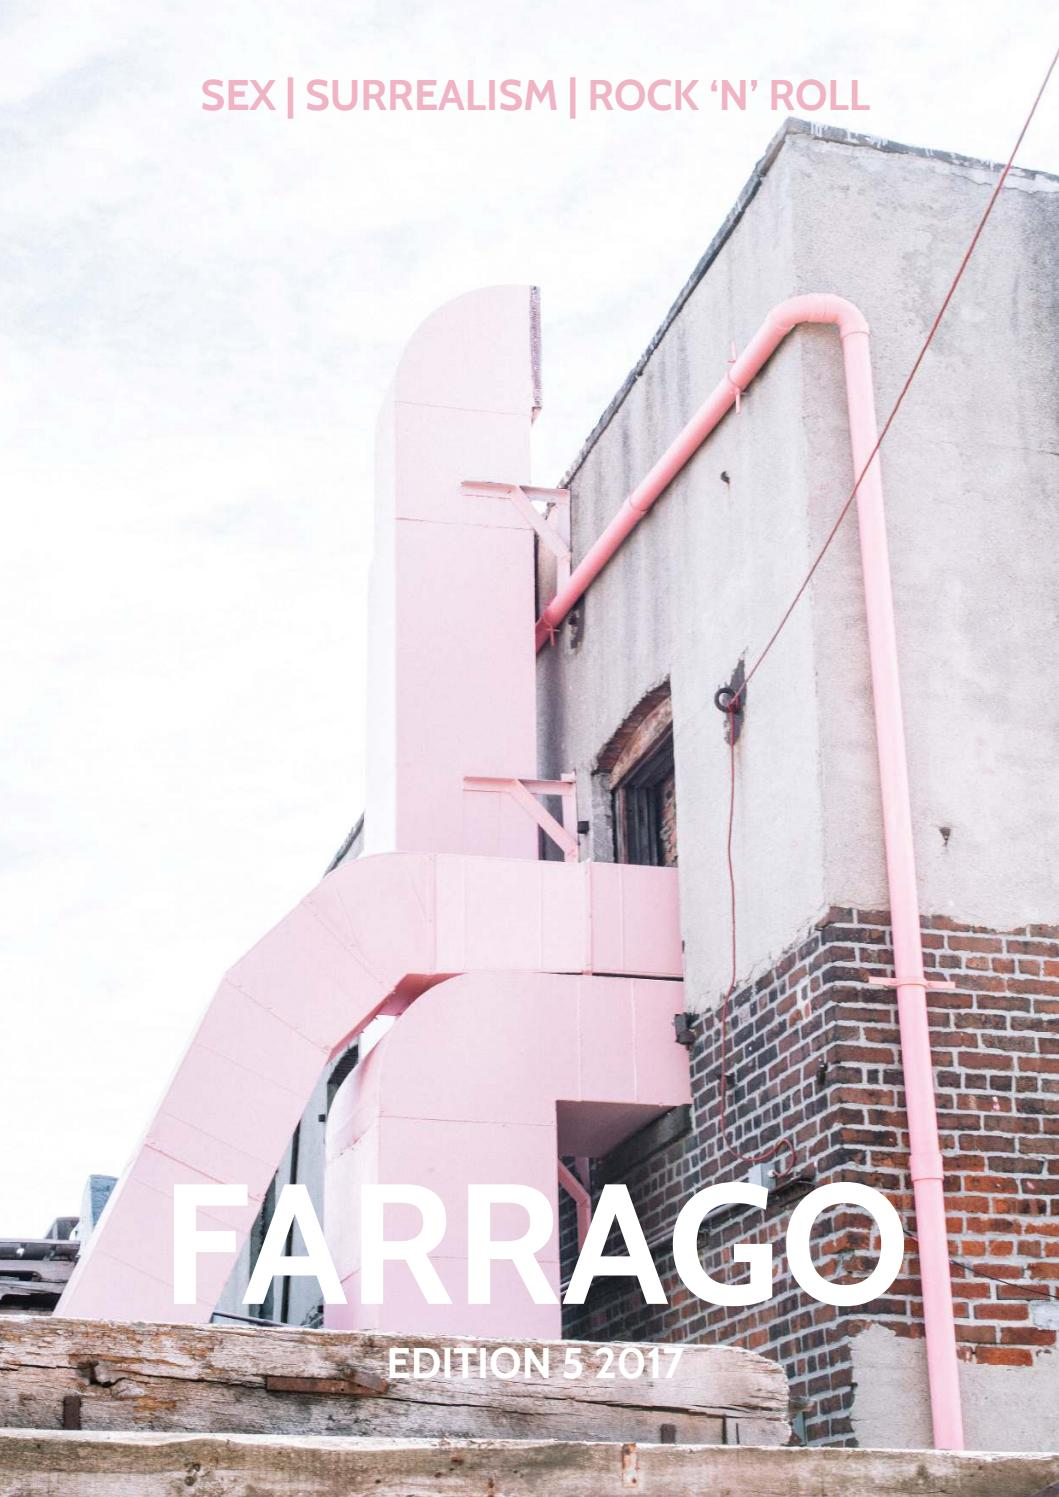 2017 Edition 5 by Farrago Magazine - issuu